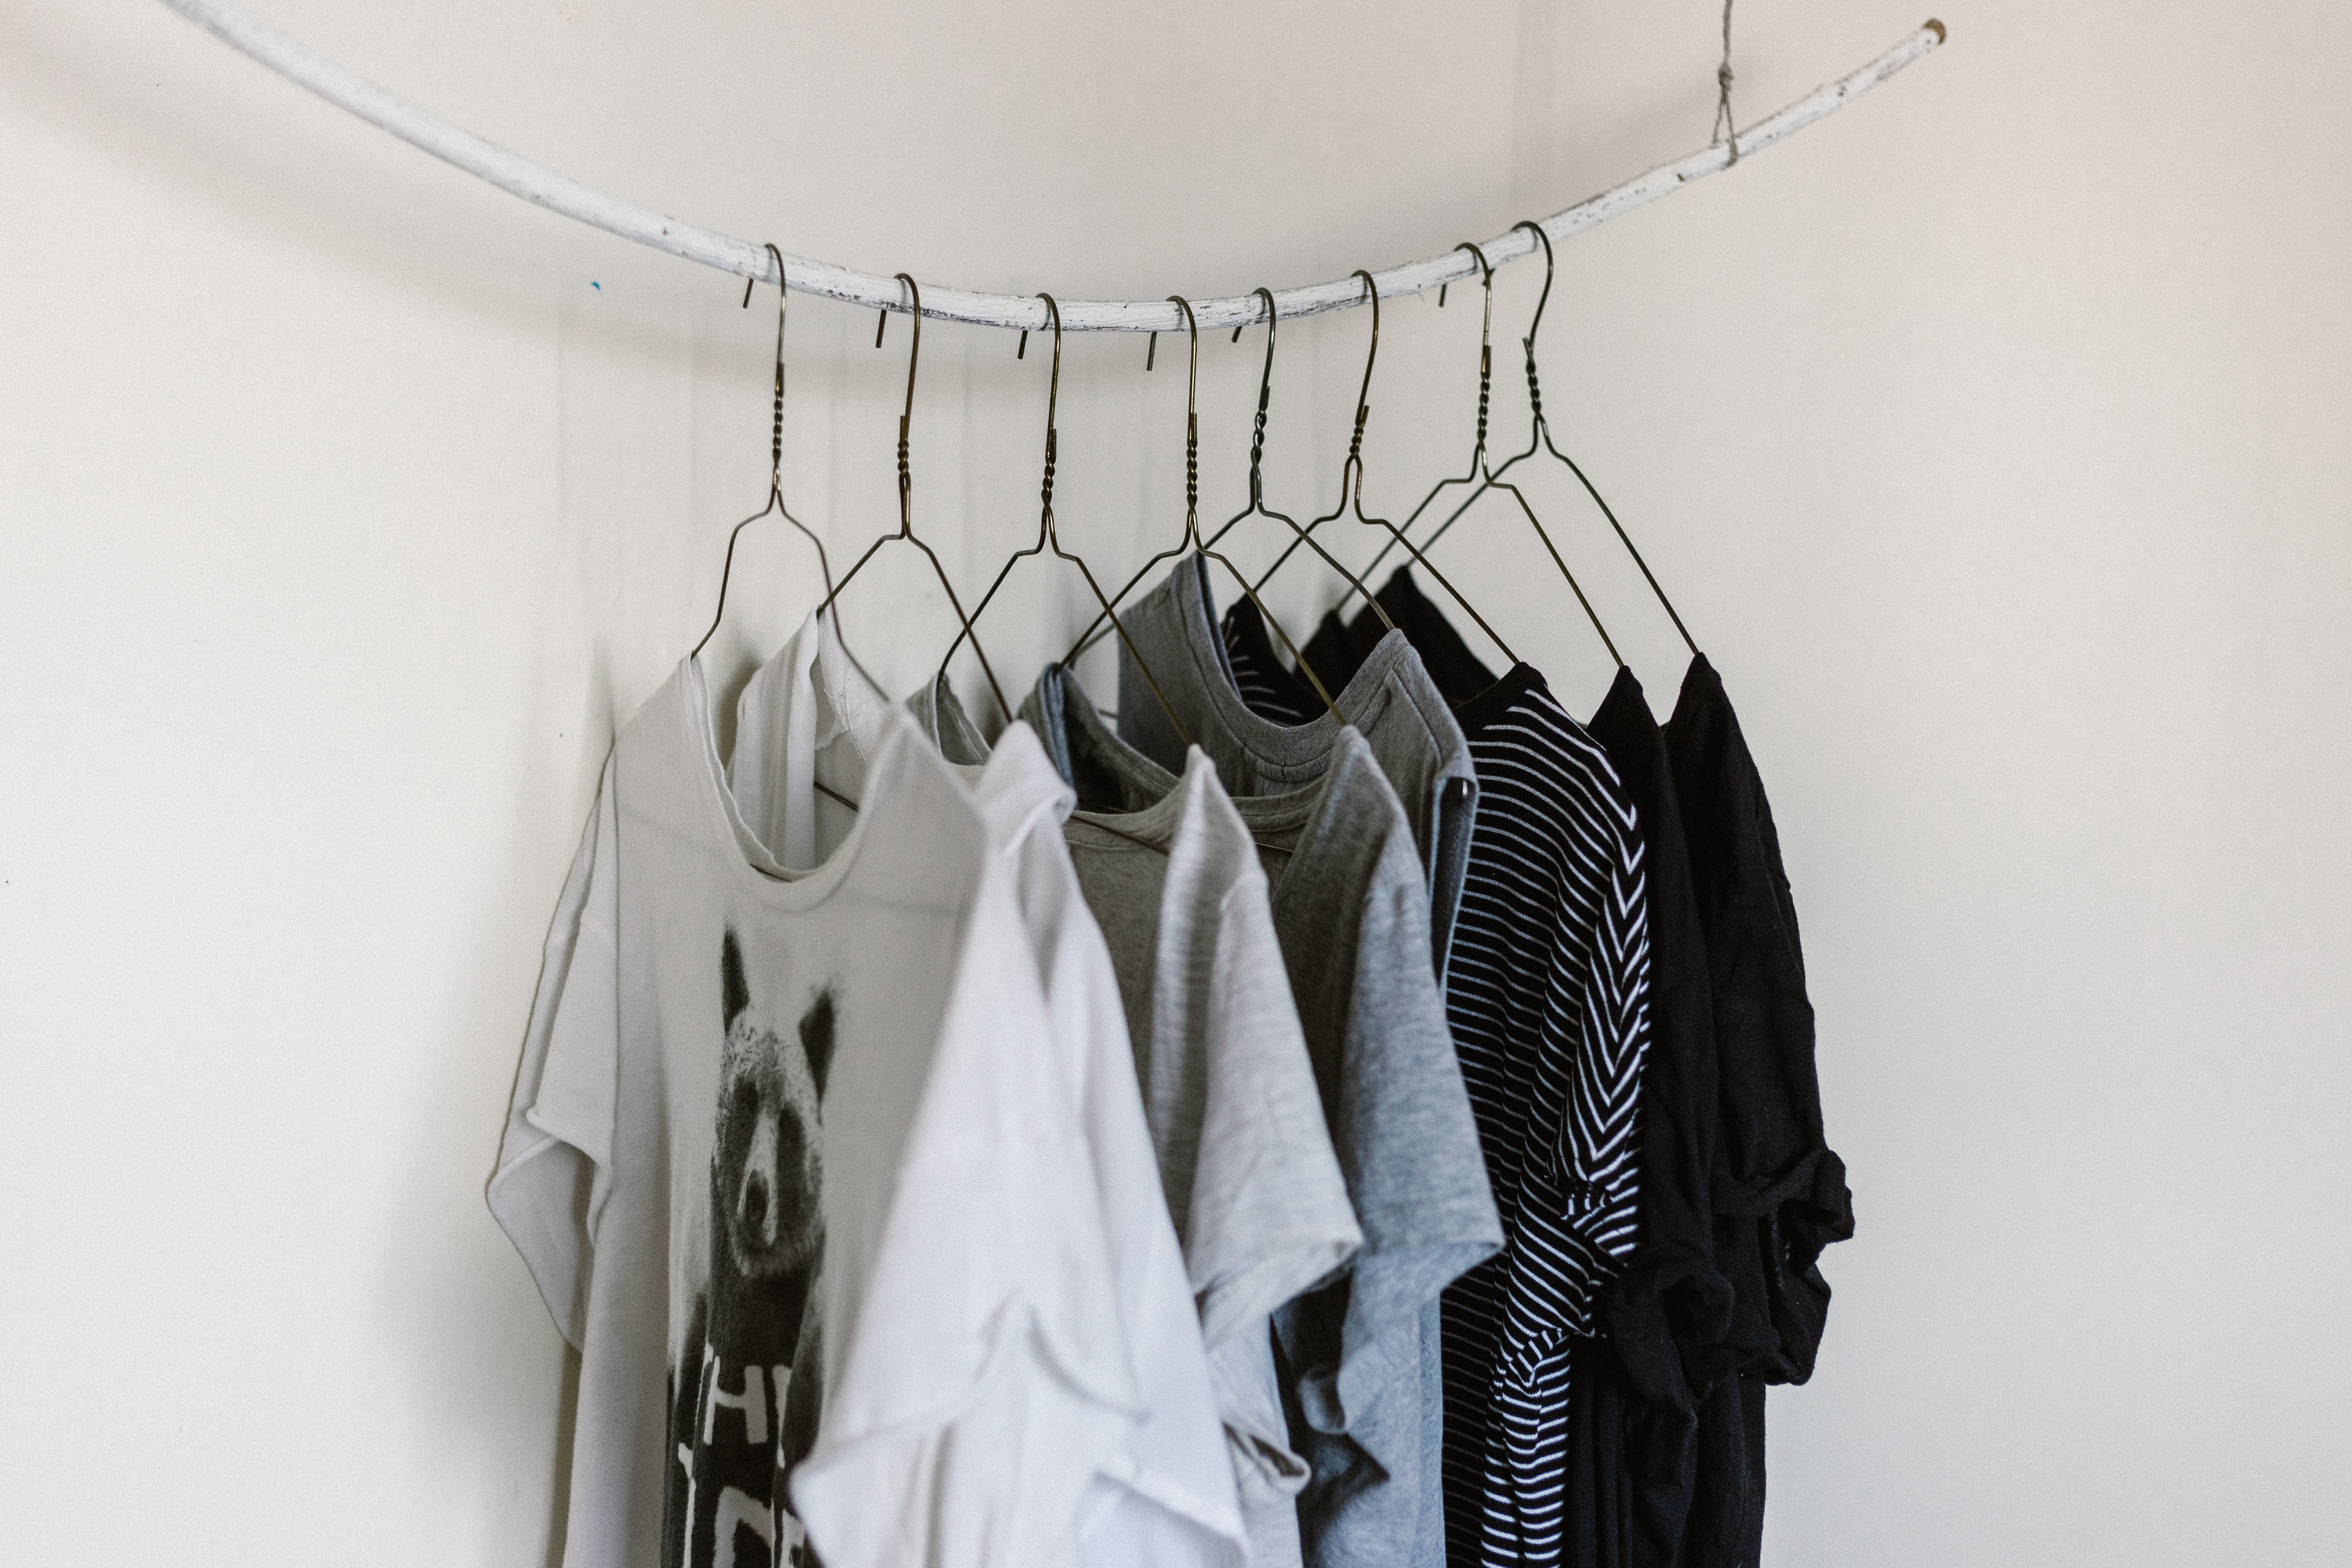 assorted-color clothes hanging on rod